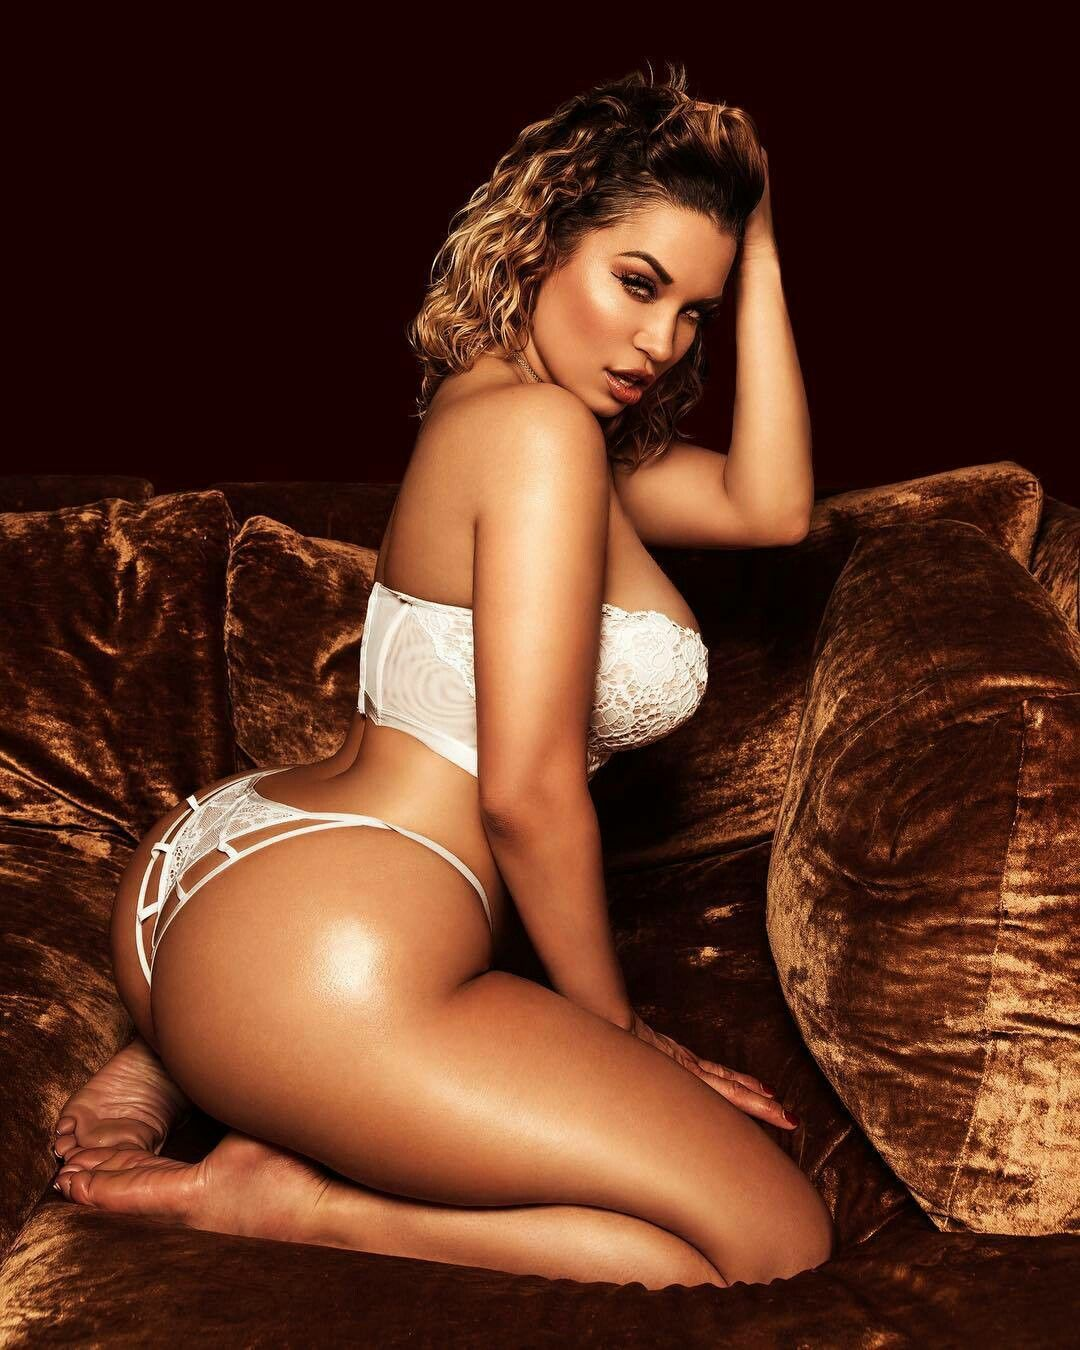 Video Jessica Kylie naked (56 images), Feet